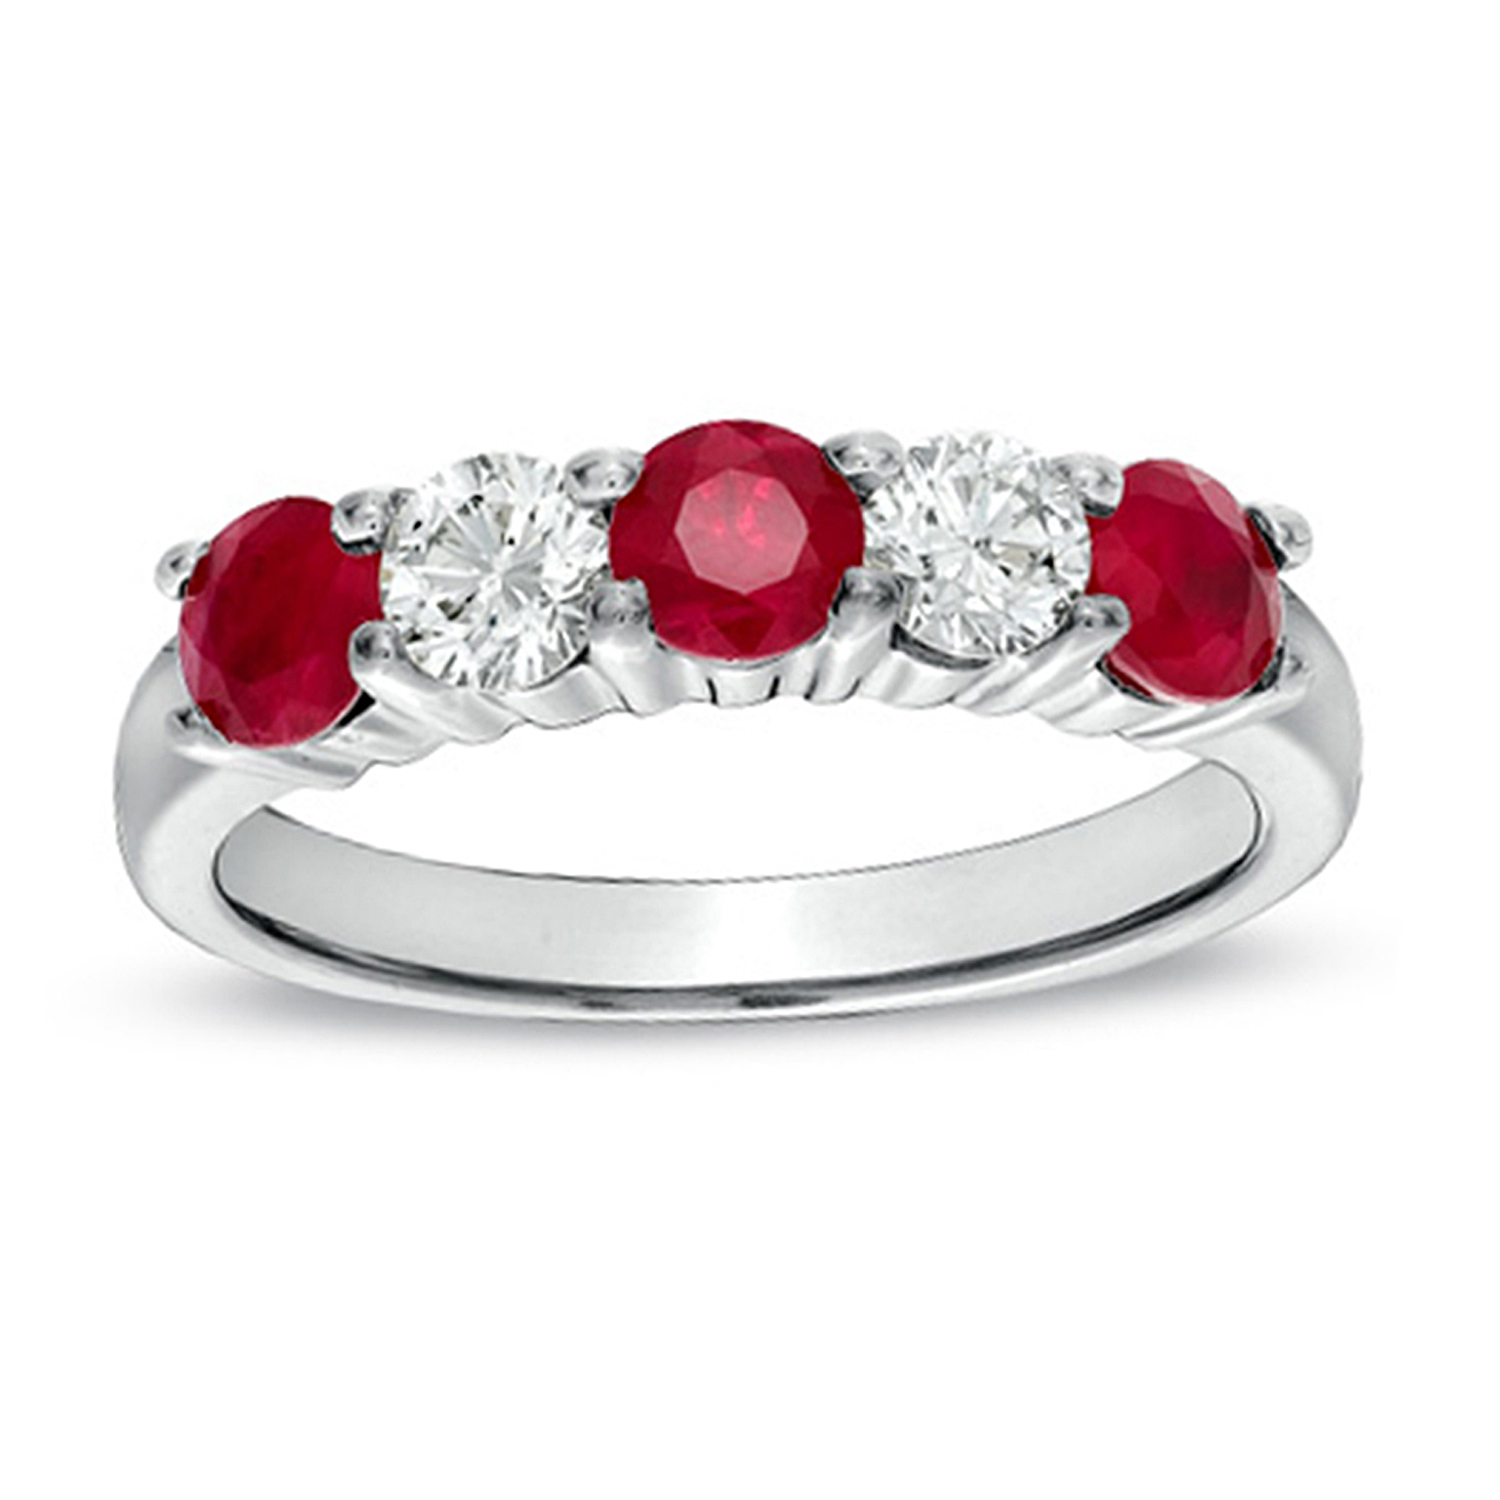 View 1.26cttw Natural Heated Ruby and Diamond Ring set in 14k Gold